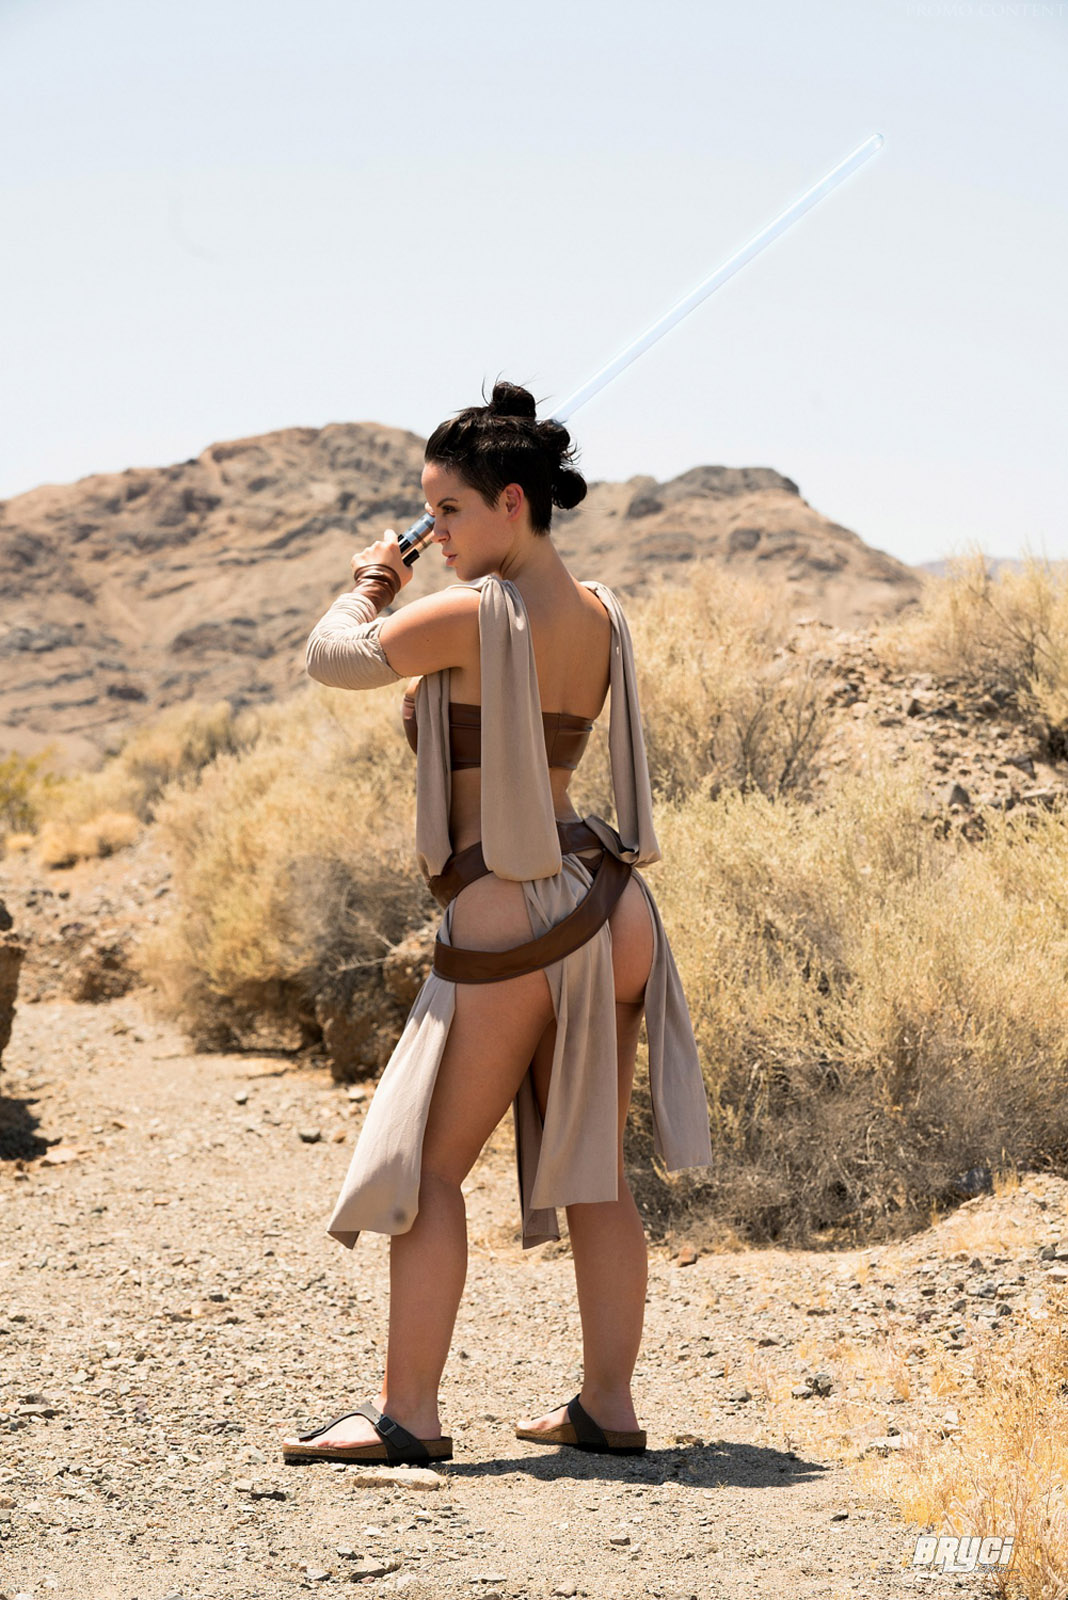 from Curtis star wars cosplay sex